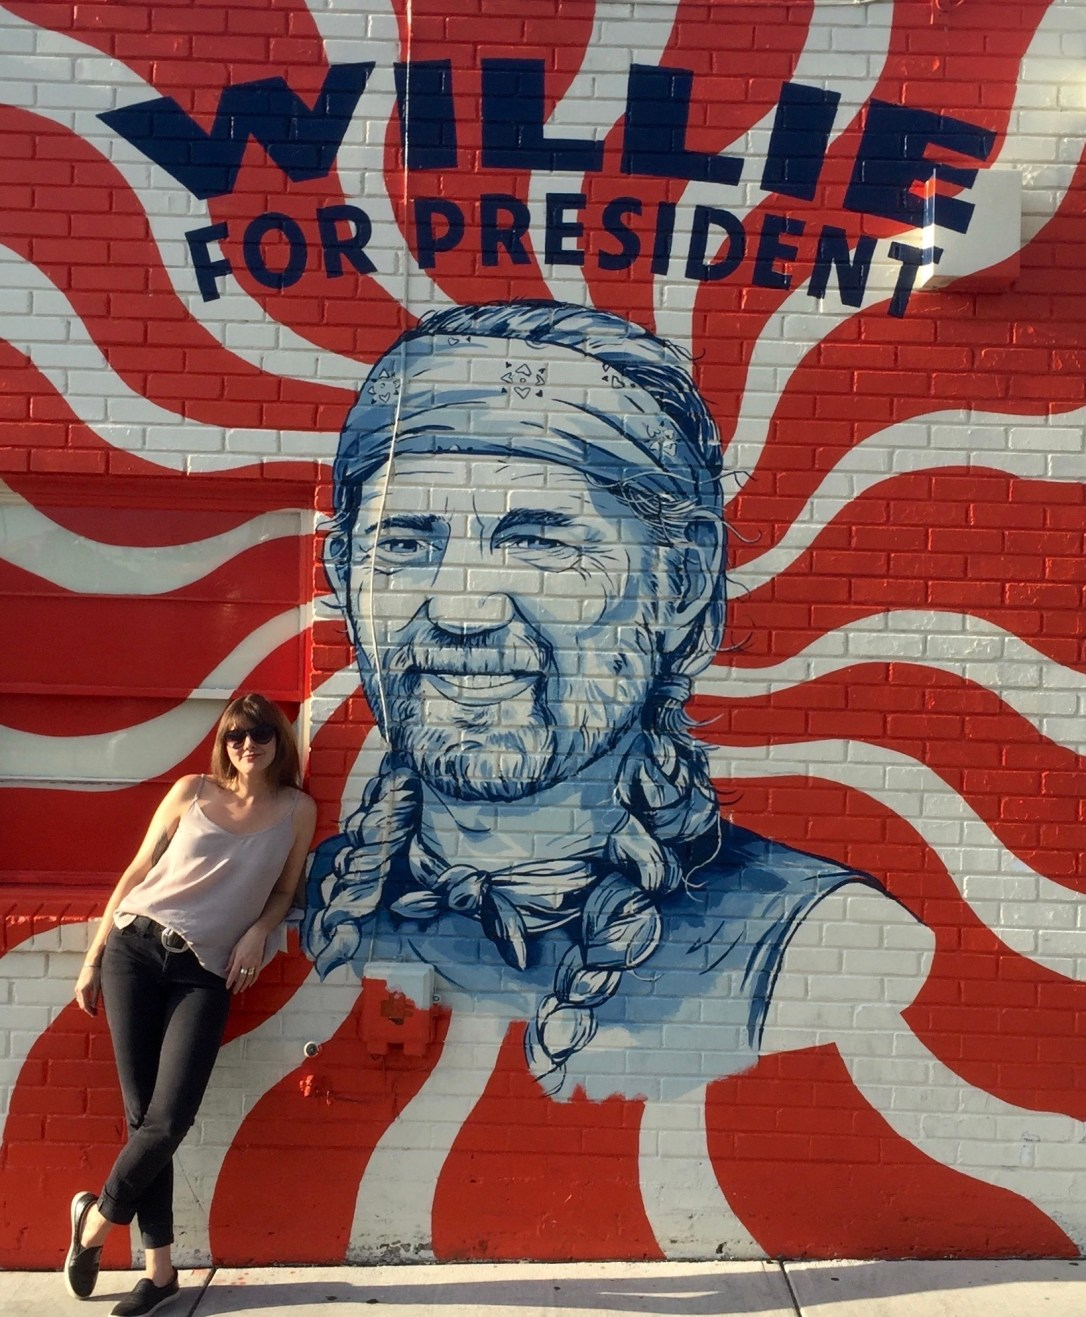 Willie For Prez